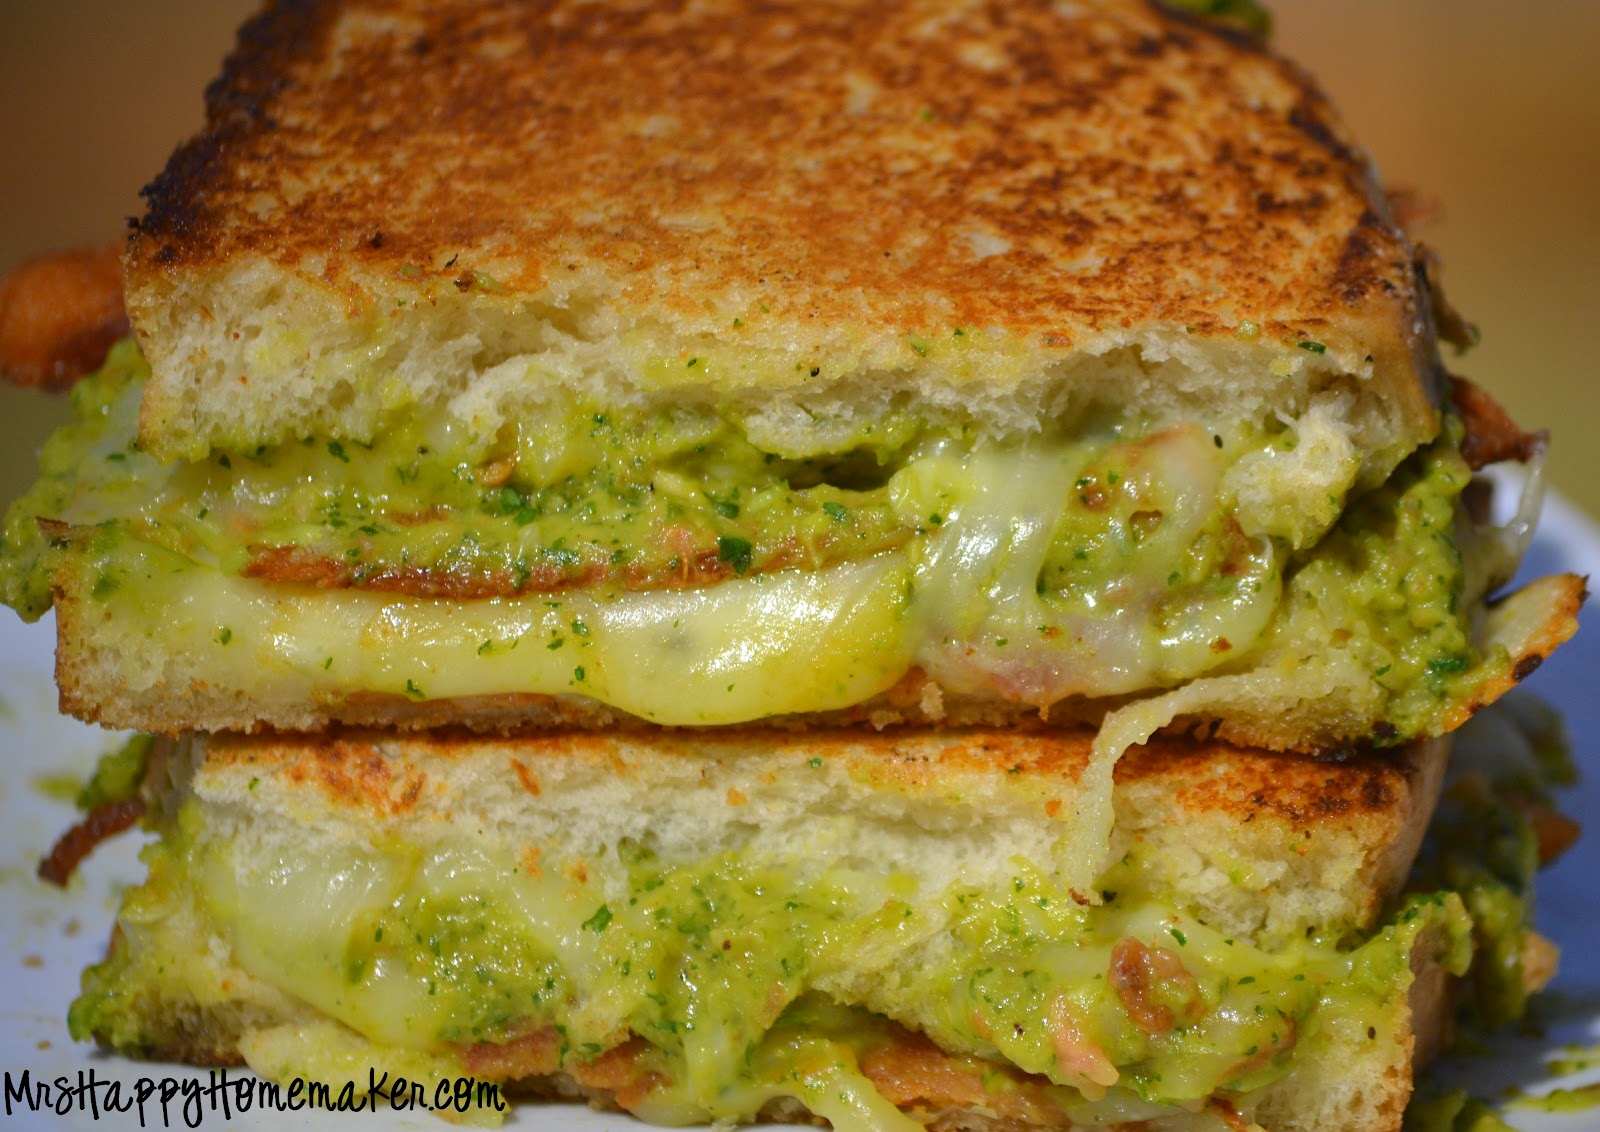 ... beans and guacamole caramelized cheese covered grilled cheese sandwich